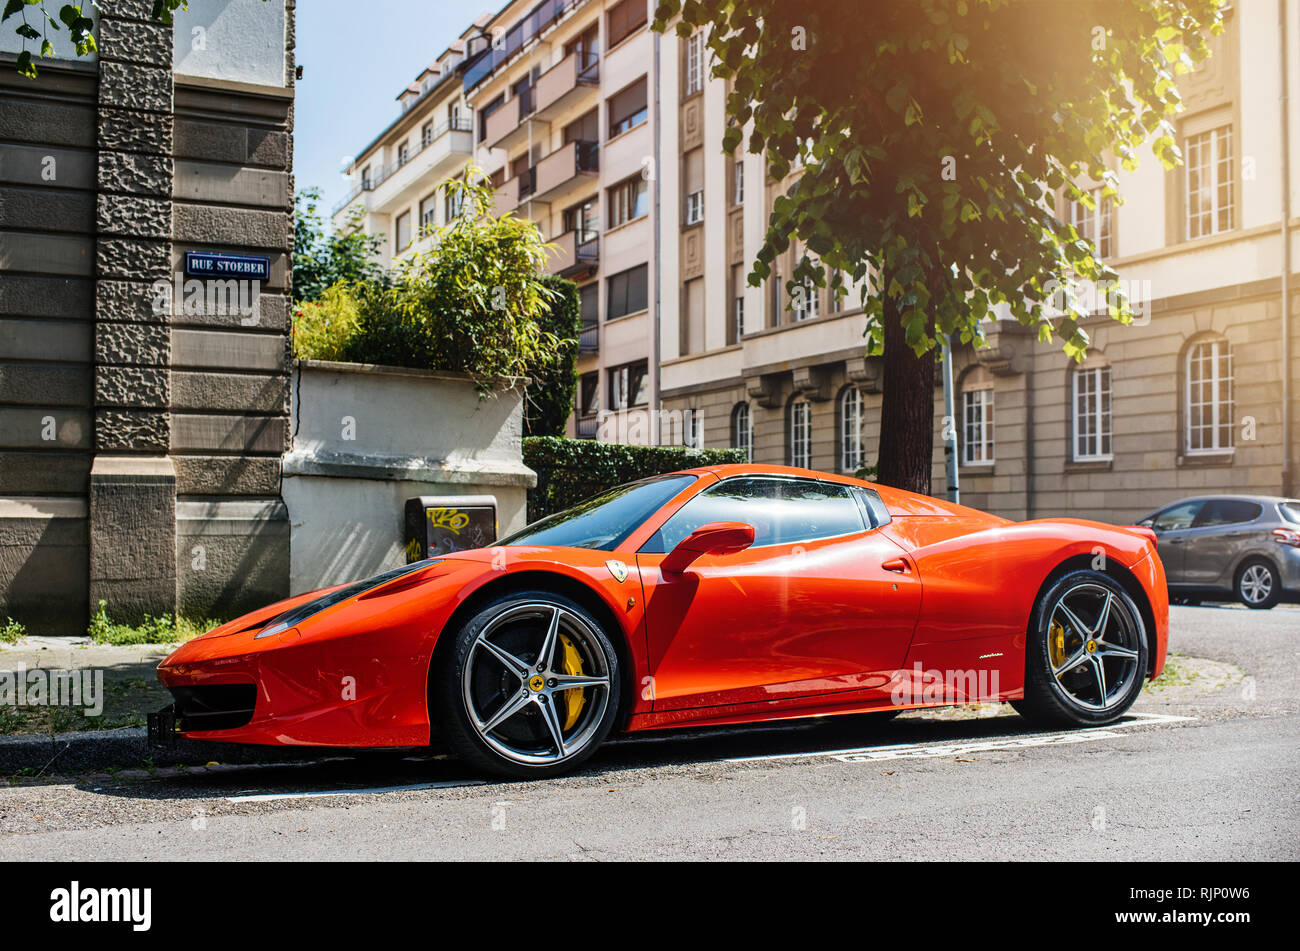 STRASBOURG, FRANCE - MAY 28, 2018: City parking with expensive luxury Ferrari car red color parked on street in sunlight - Stock Image